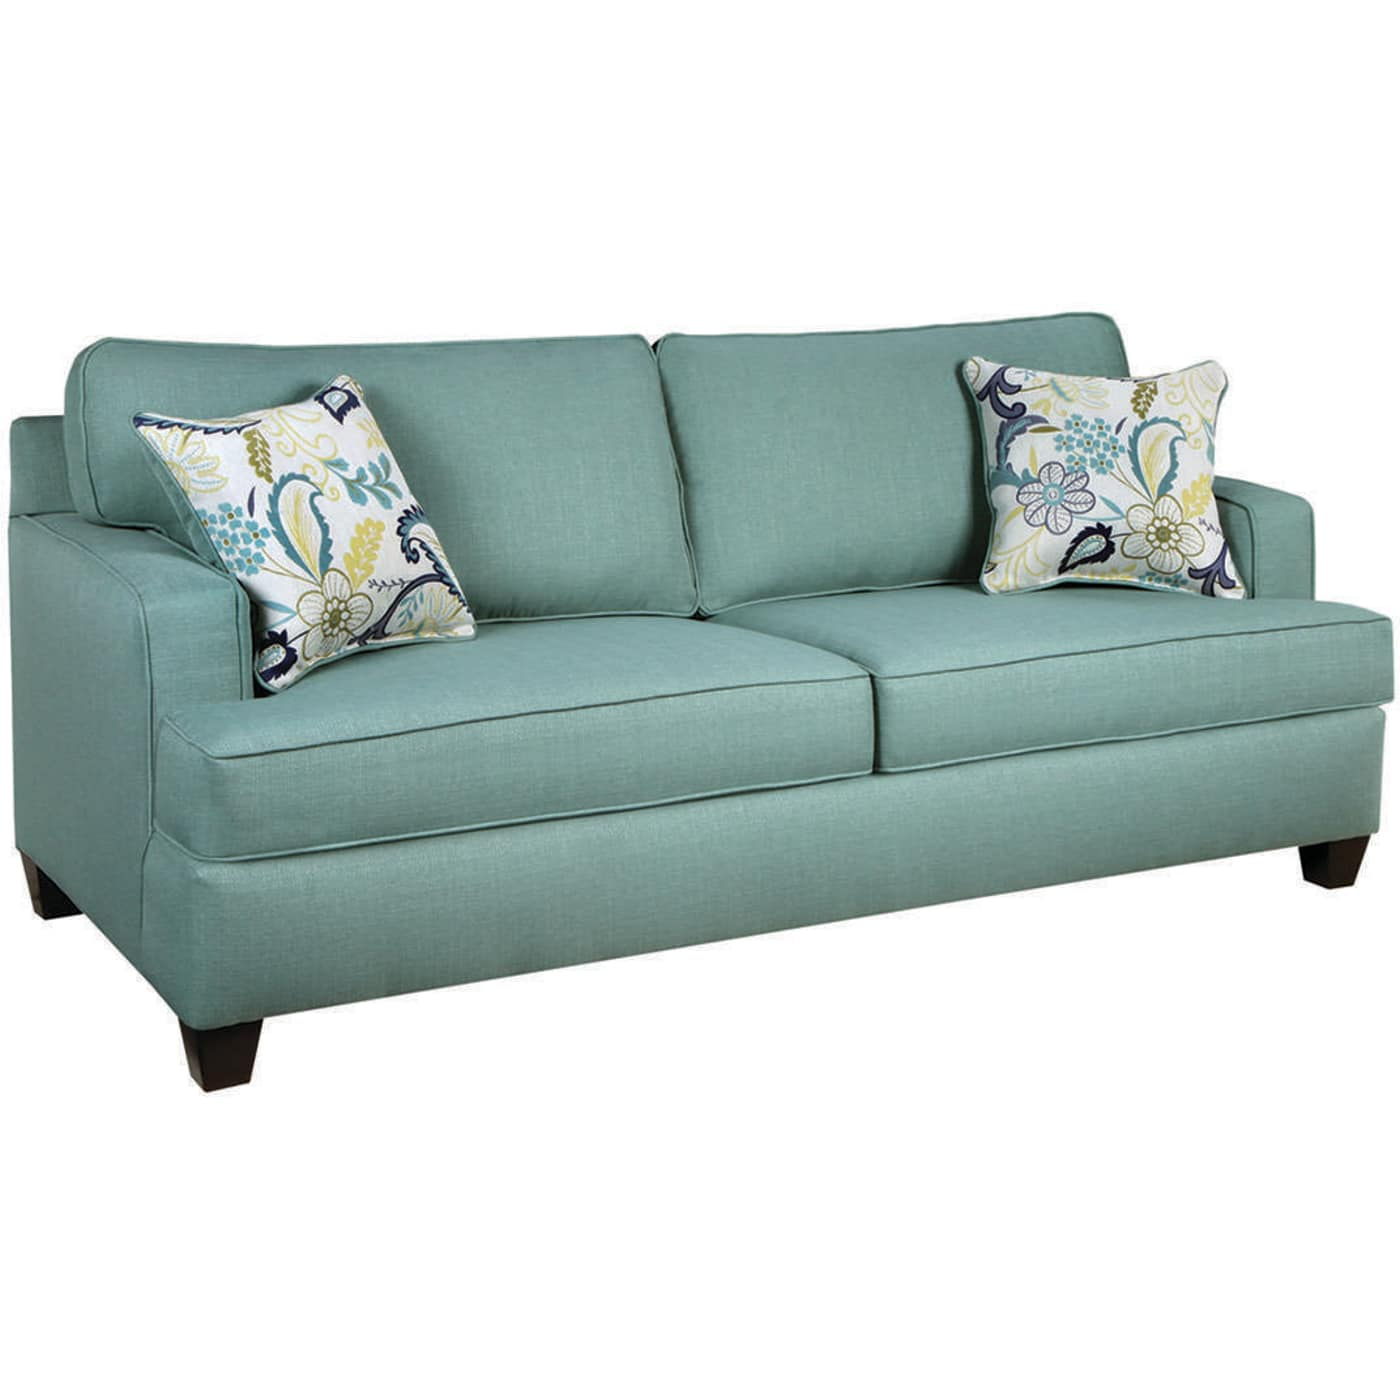 Amazing Chelsea Home Odessa Stallion Turquoise Sleeper Sofa U0026 Reviews    Goedekers.com